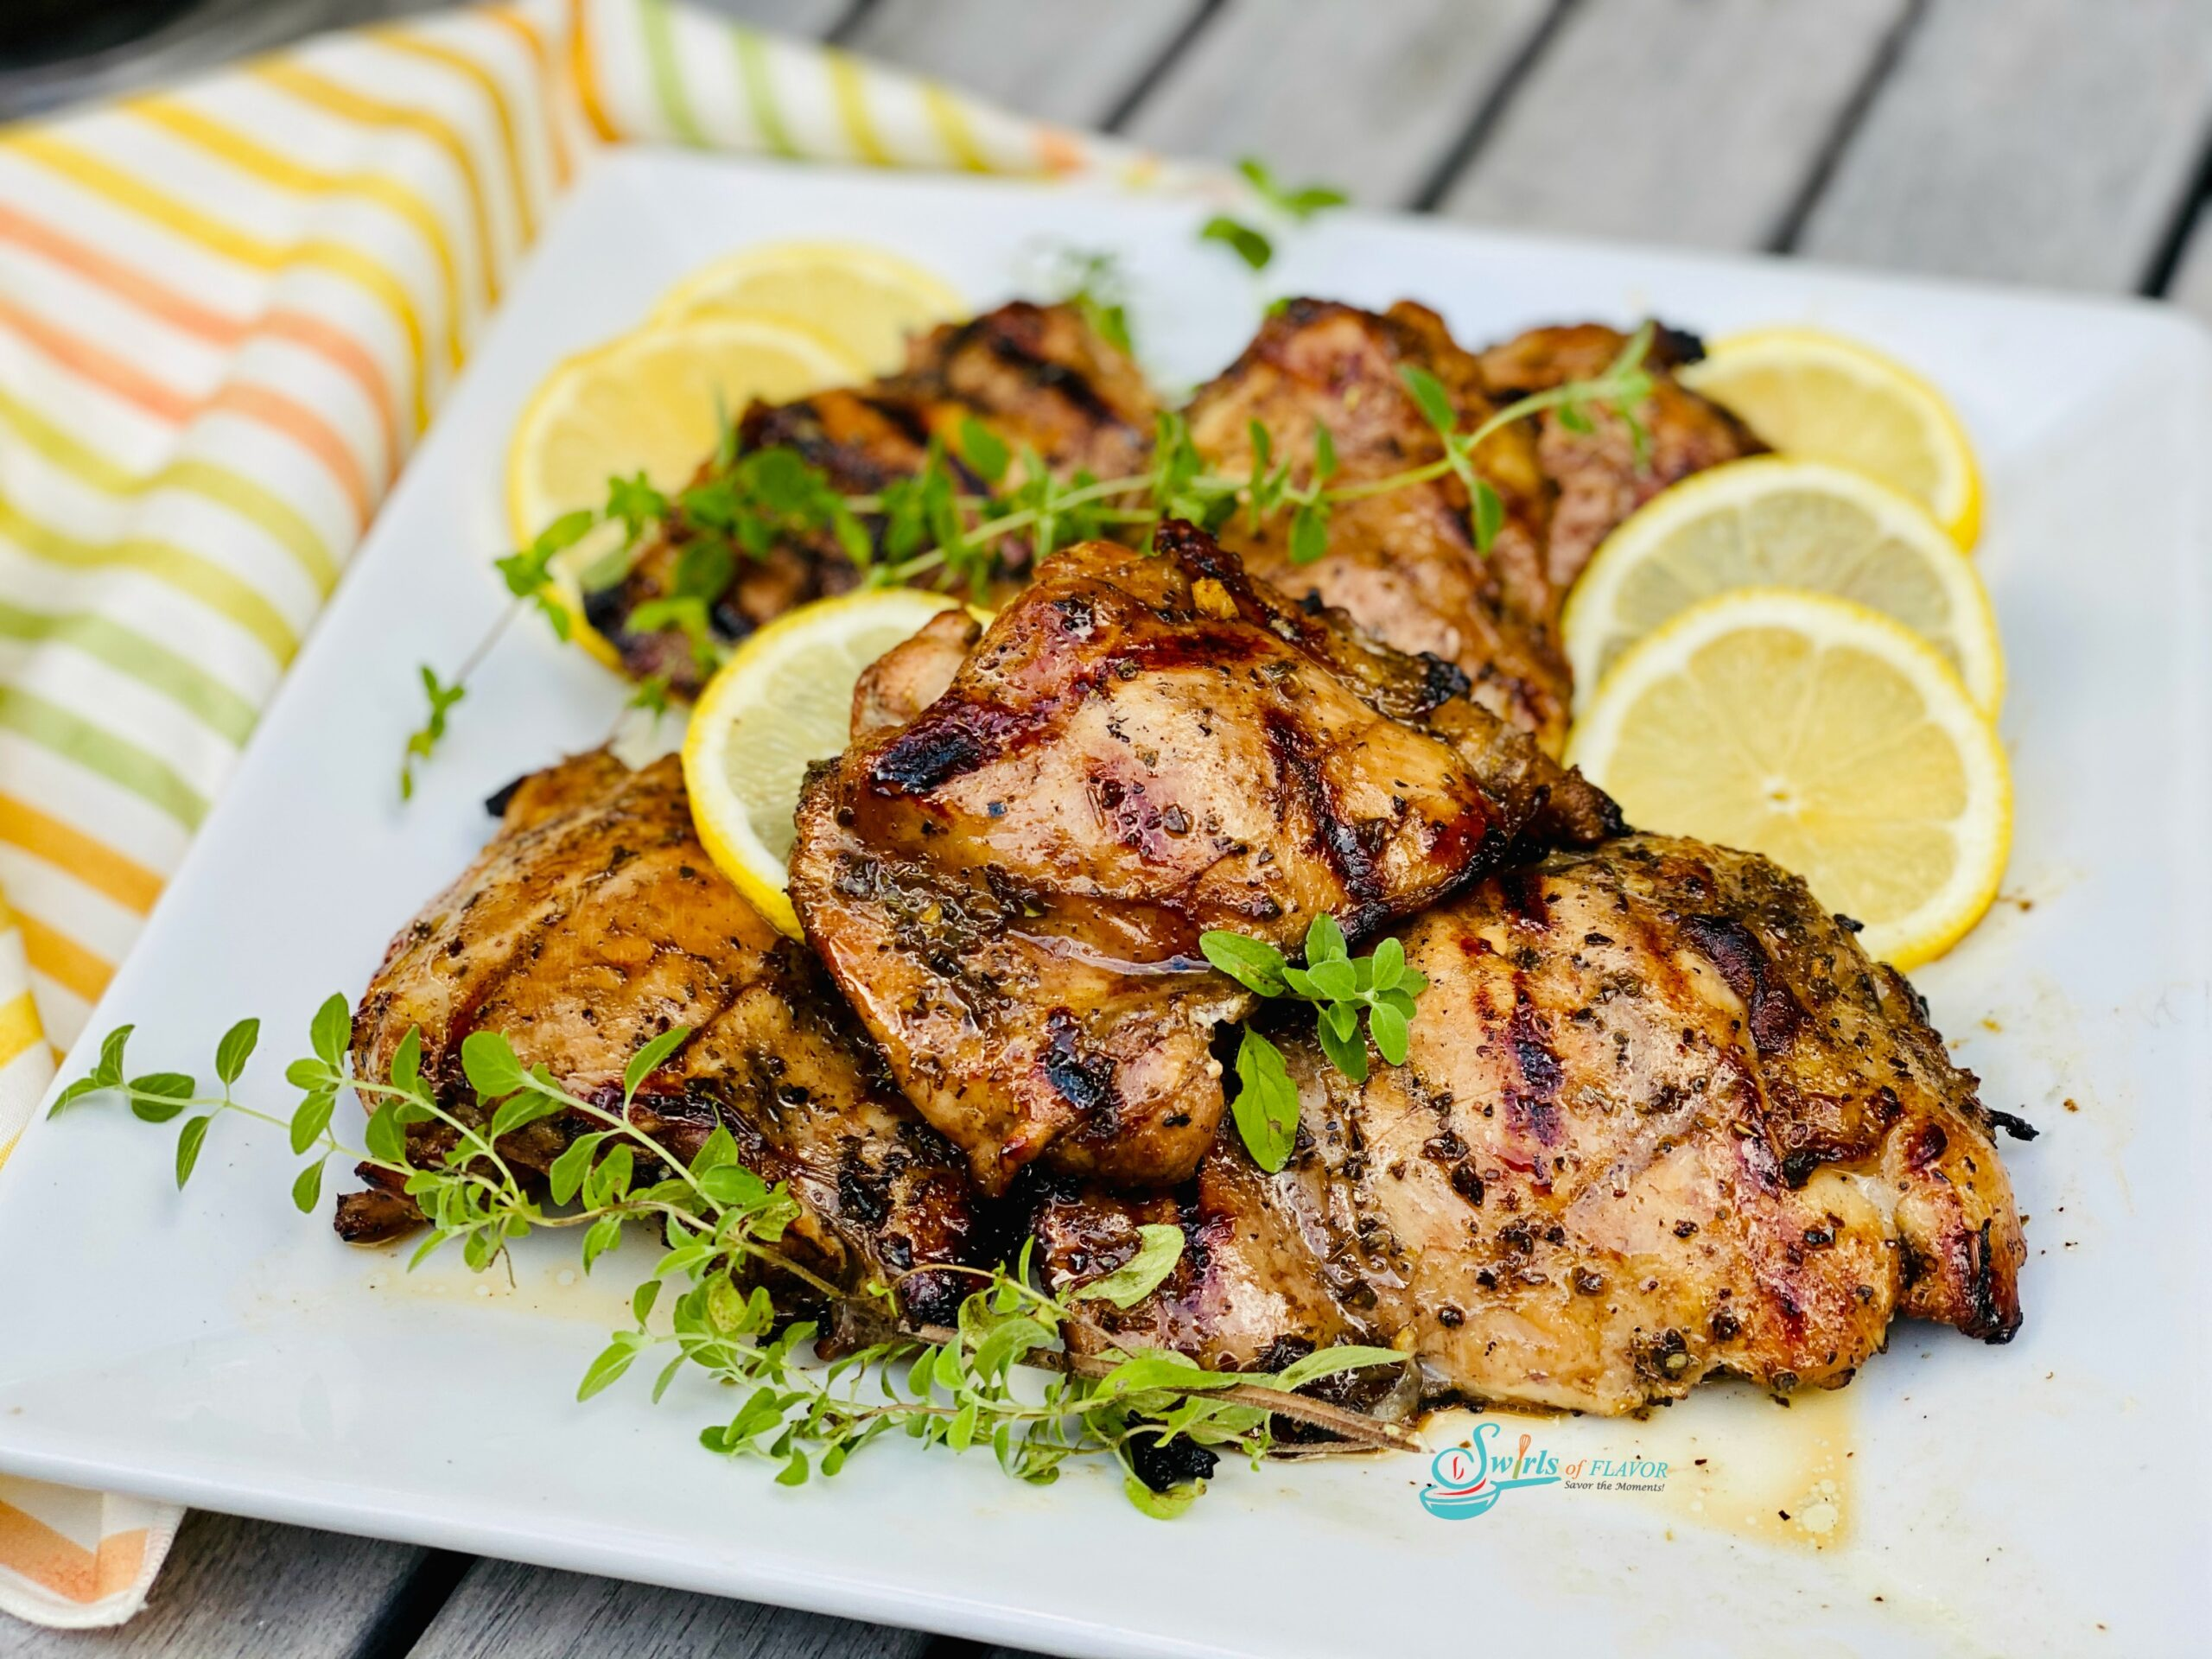 grilled chicken recipe with oregano and lemons